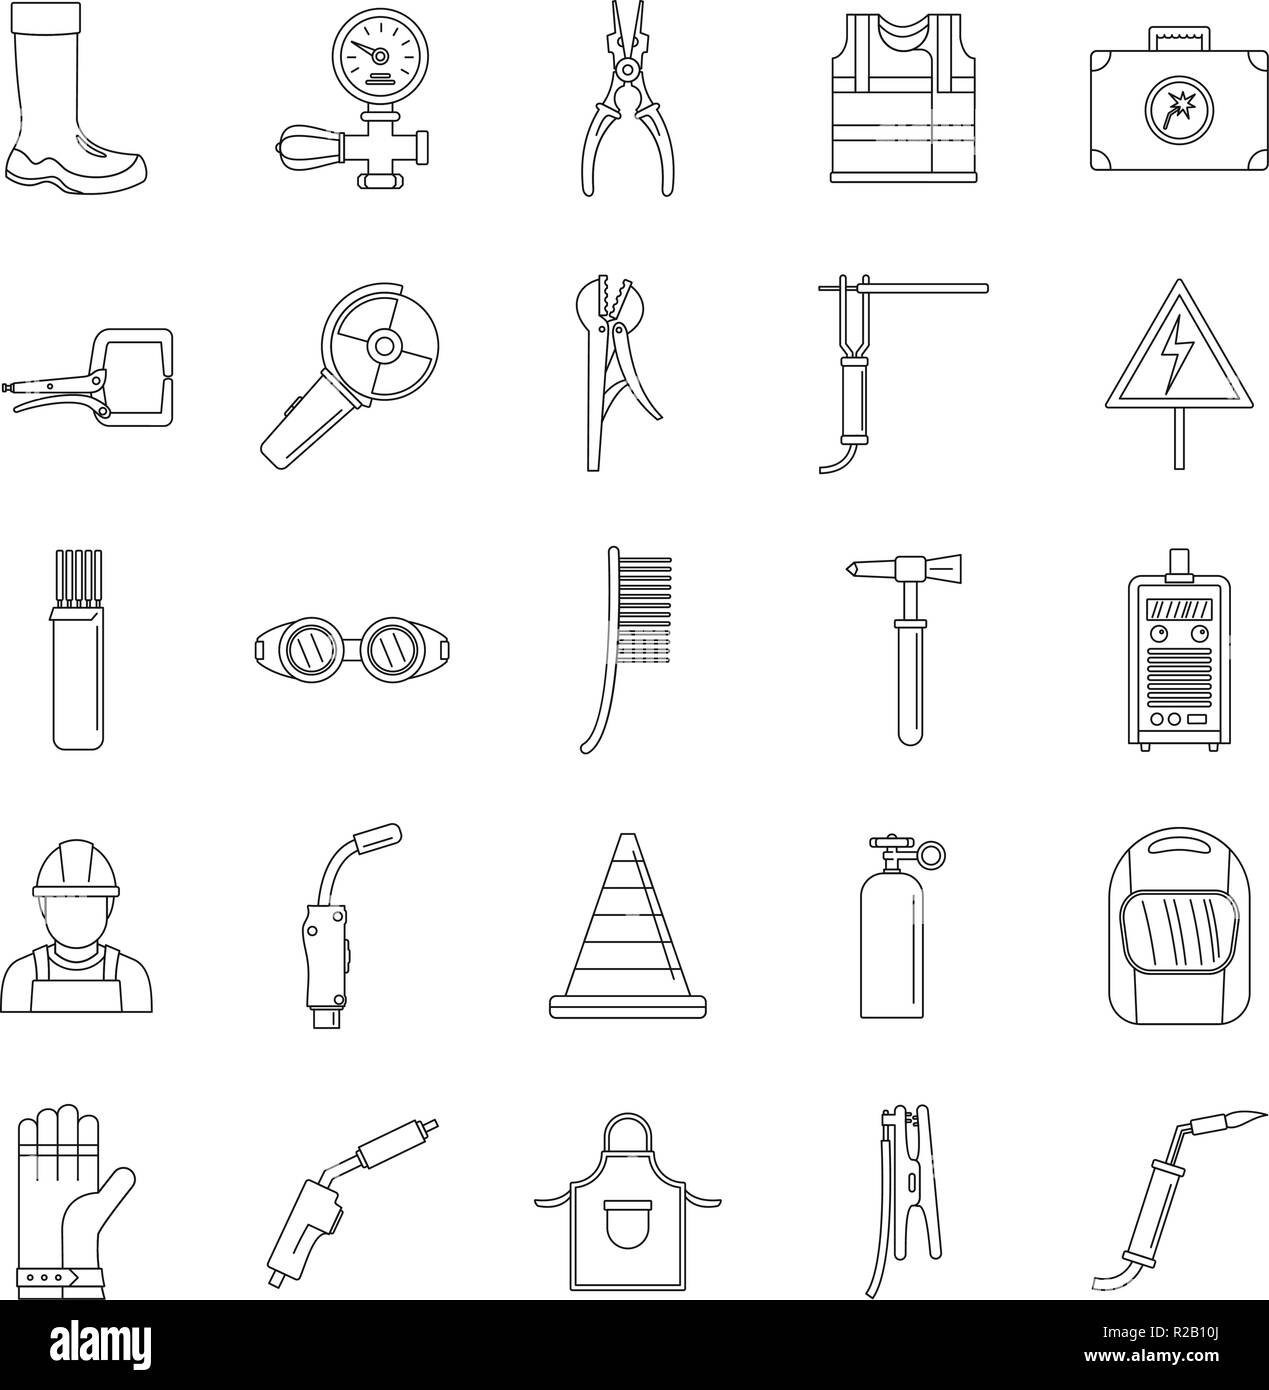 Weld Stock Vector Images Alamy Oxy Acetylene Welding Equipment Diagram Welder Icons Set Outline Illustration Of 25 Cargo For Web